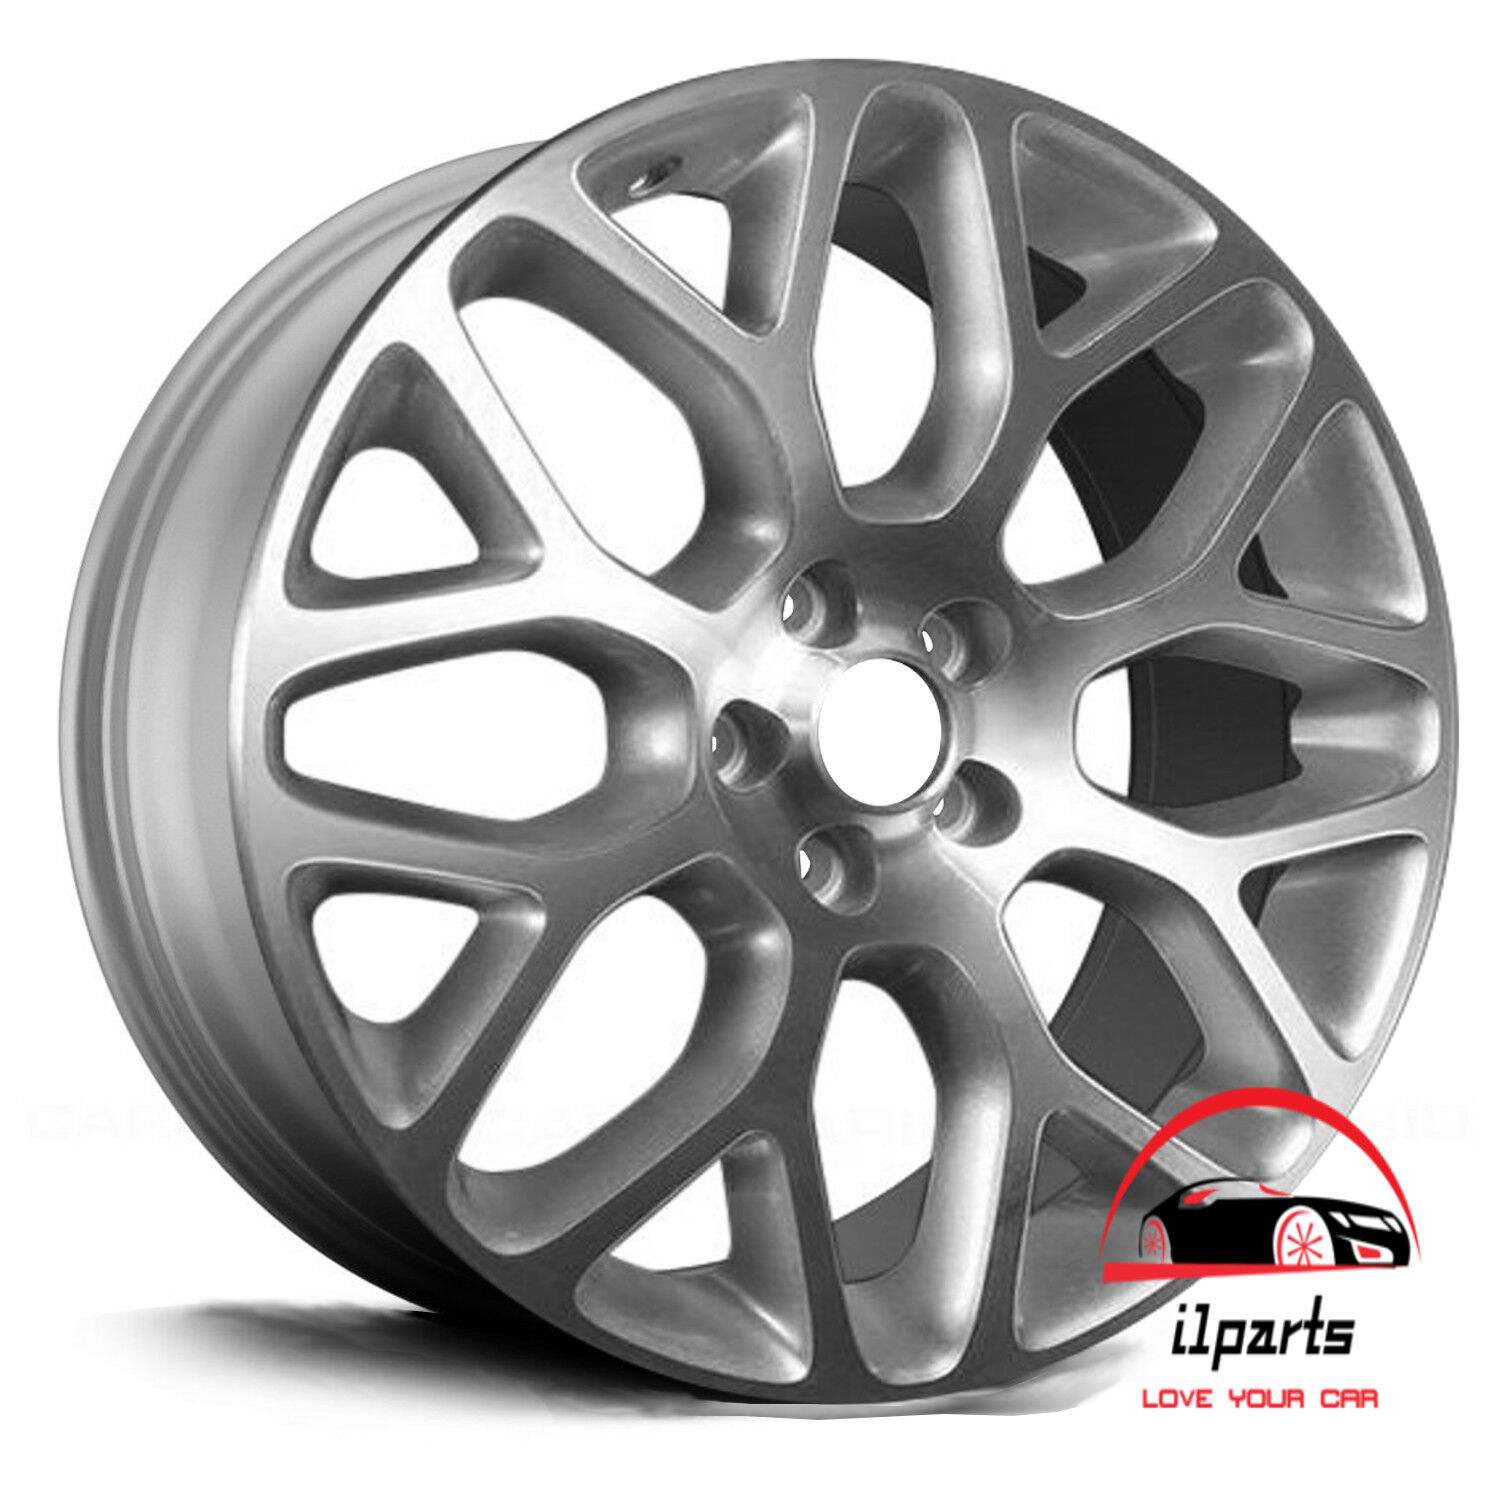 Used Ford Fusion Wheels for Sale